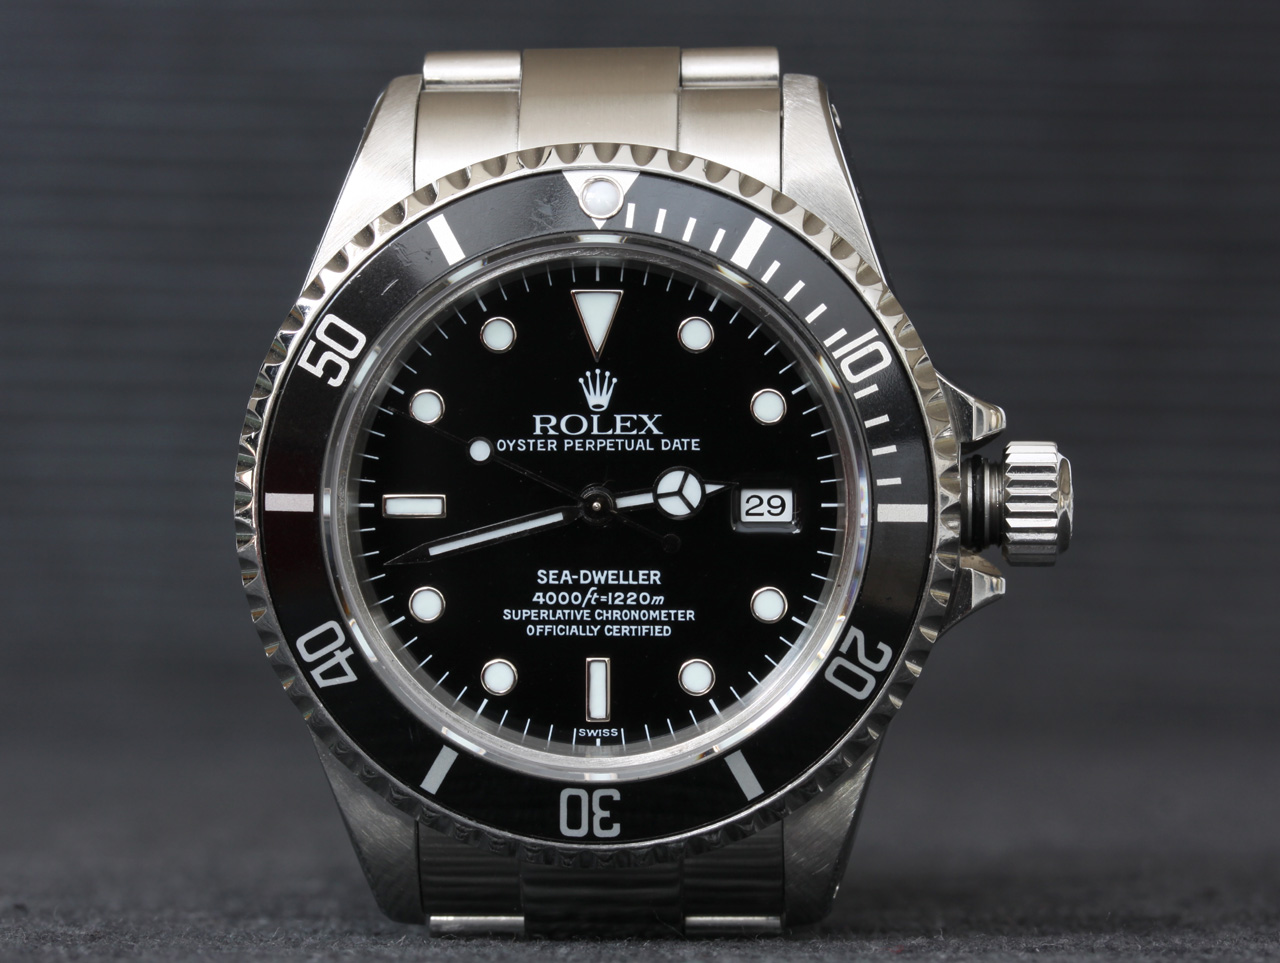 First Rolex 16600 Swiss Dial Sea Dweller